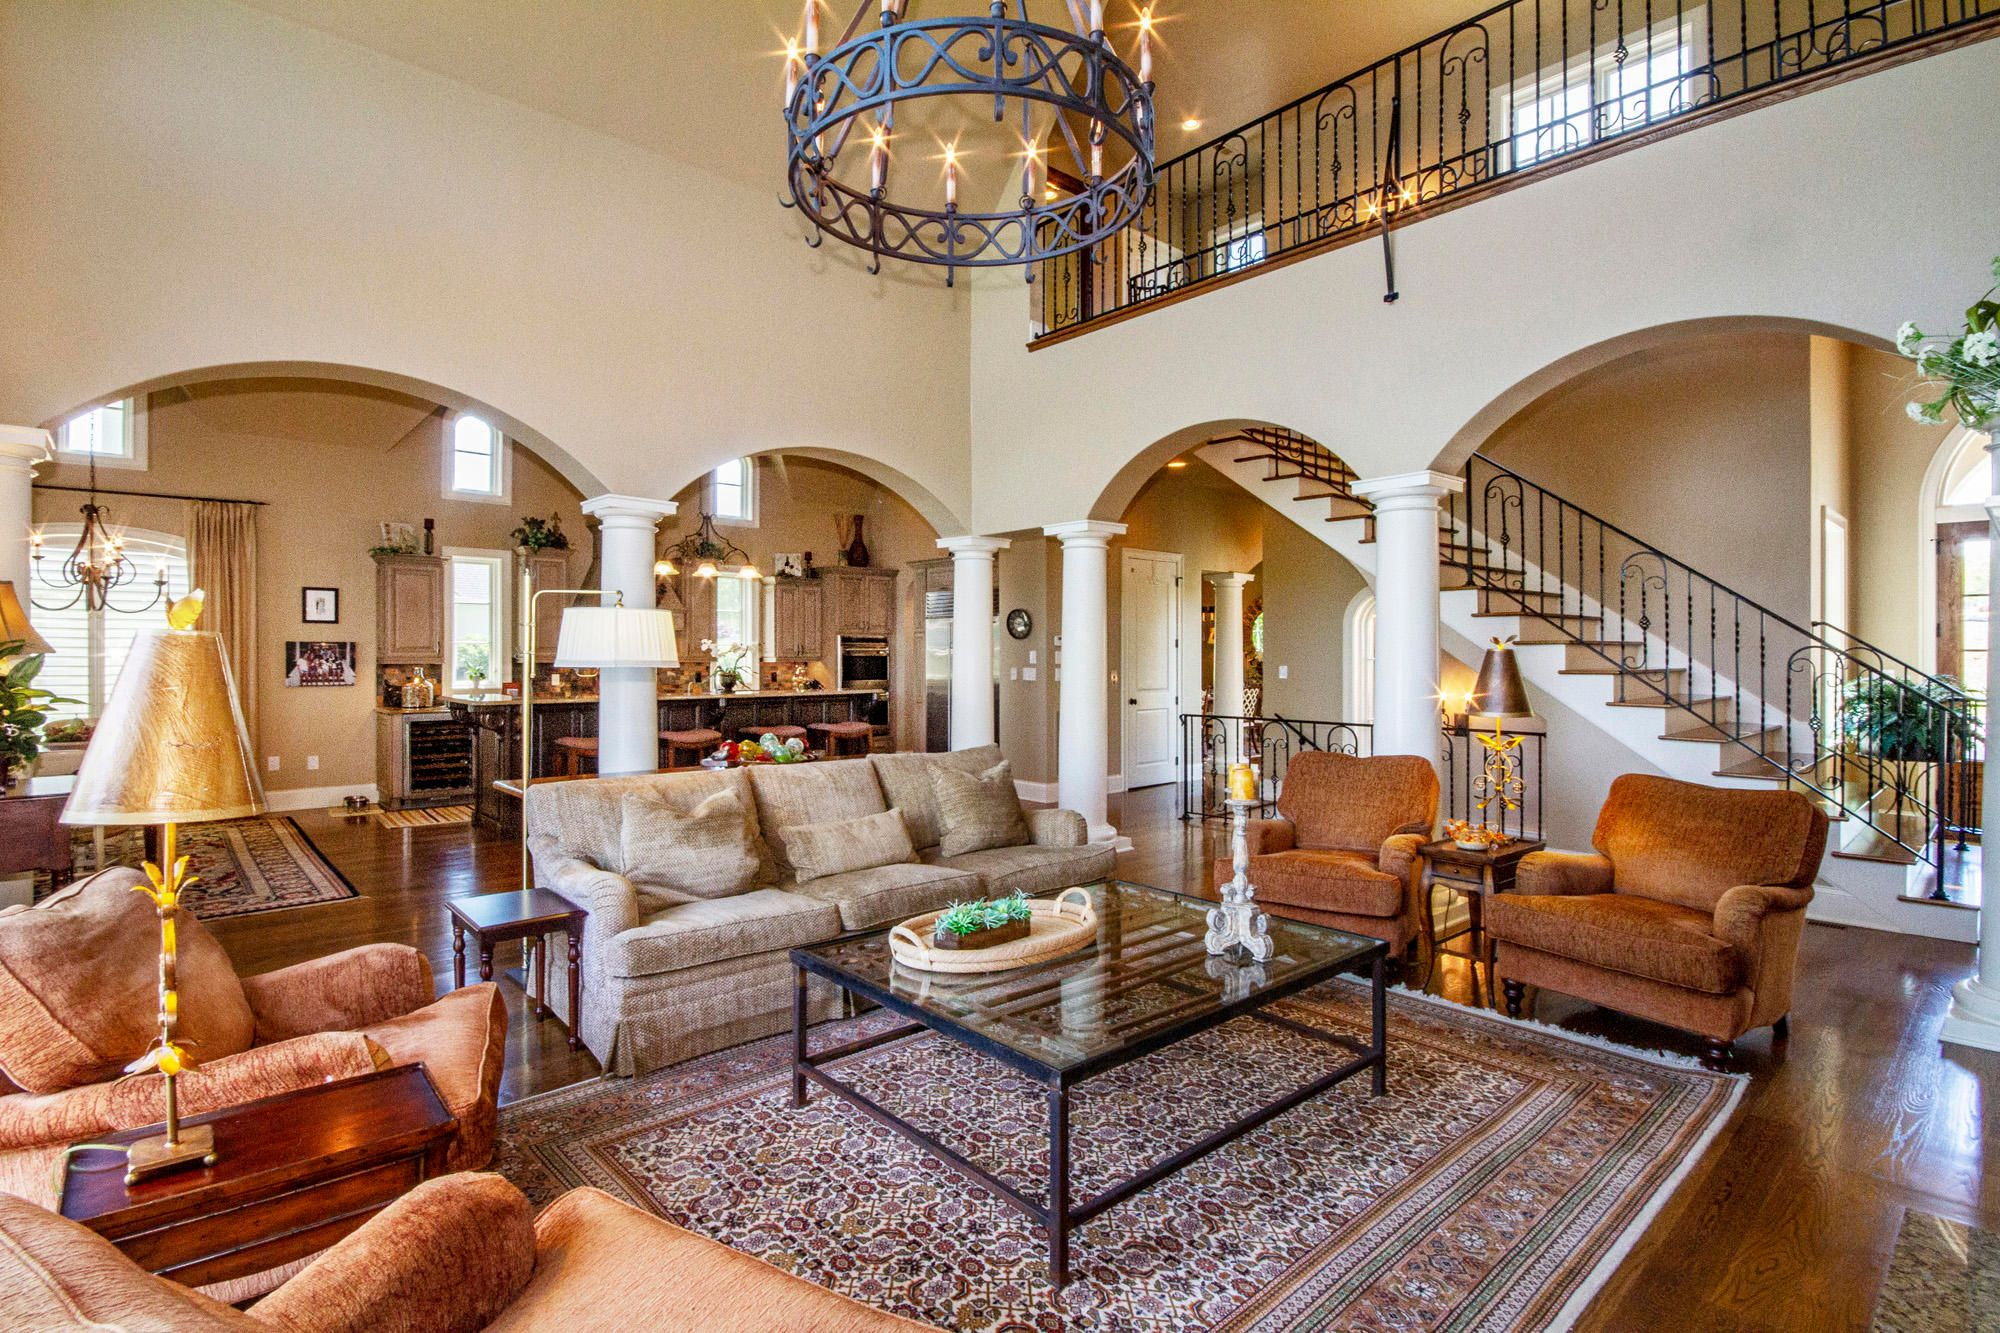 Lovely Arches & Wrought Iron Accents